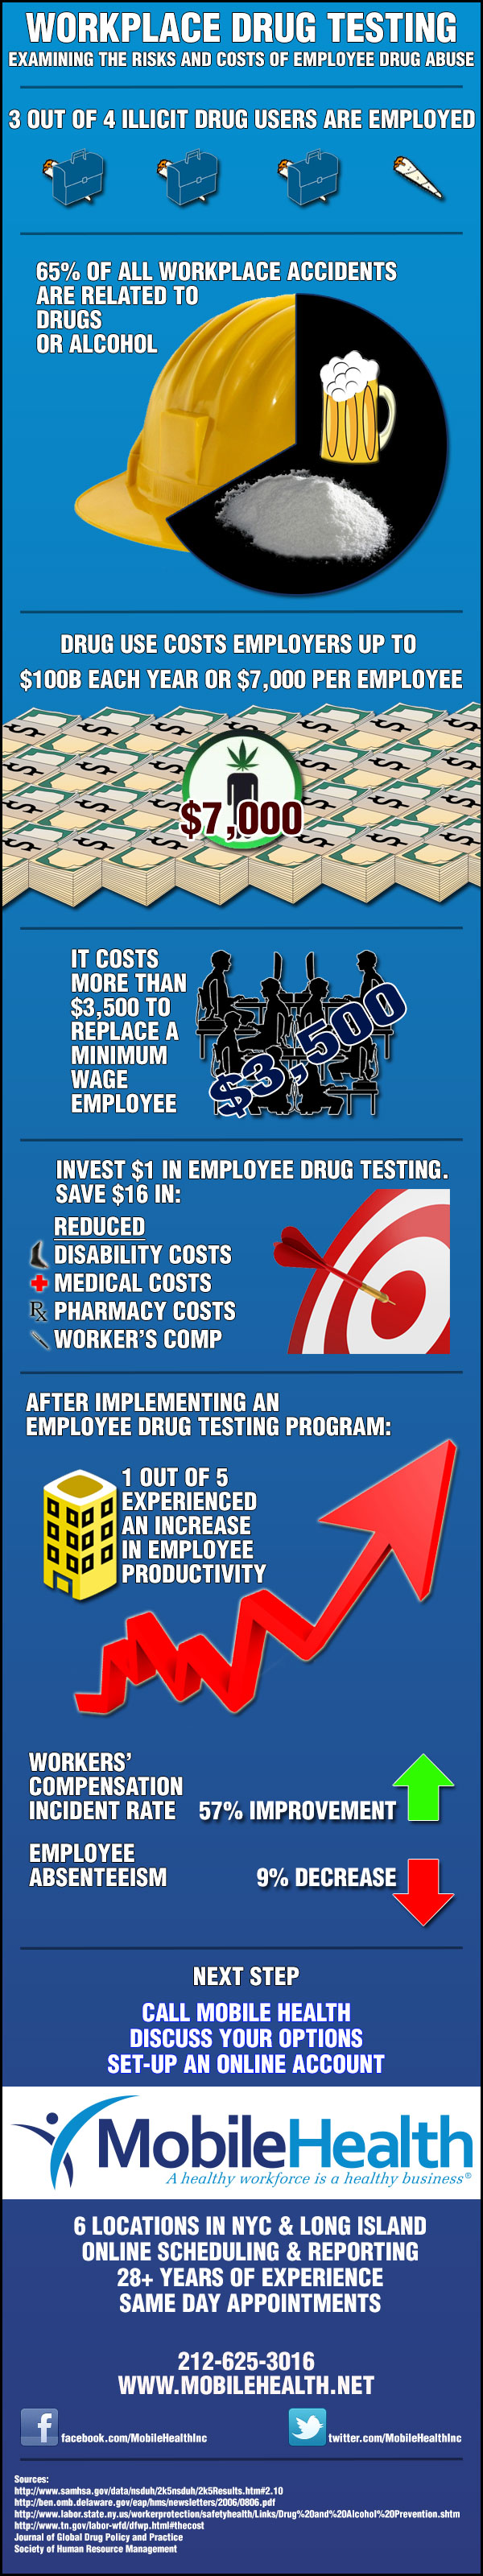 low incidence of positive pre employment drug testing for workplace drug testing infographicworkplace drug testing examining the risks and costs of employee drug abuse